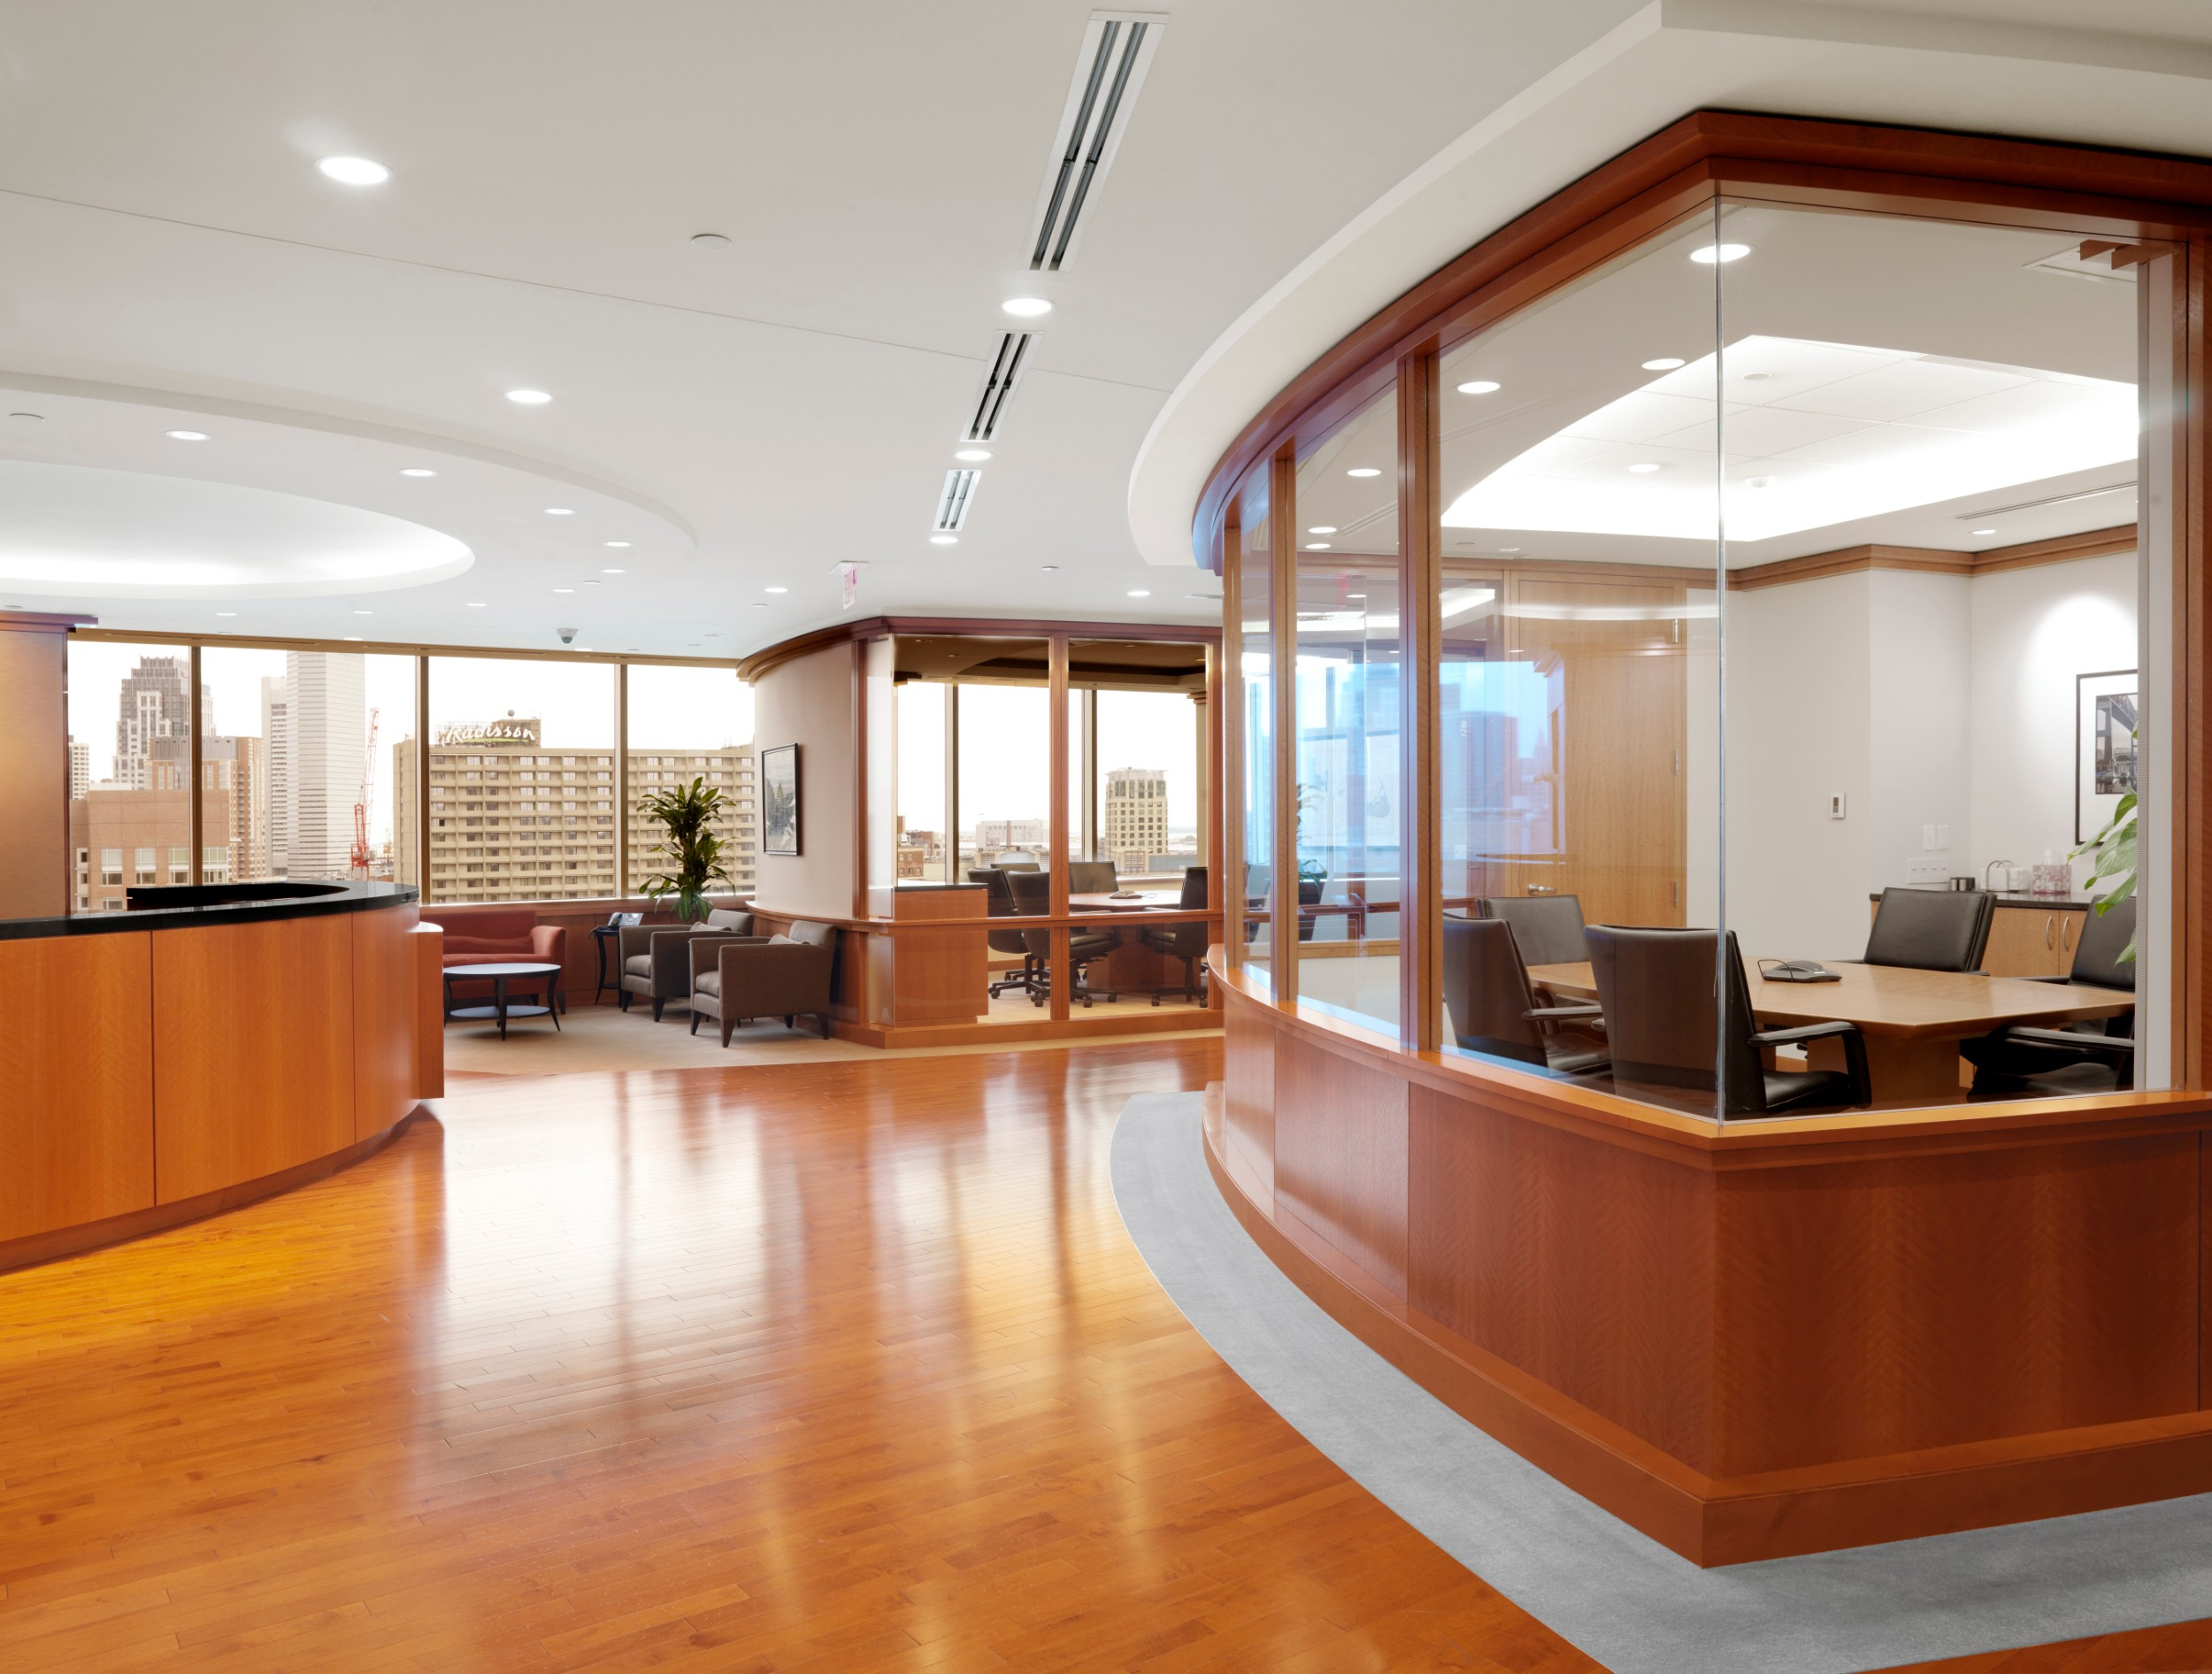 Corderman_Confidential_Office_Interior_Construction_Hallway_Reception.jpg